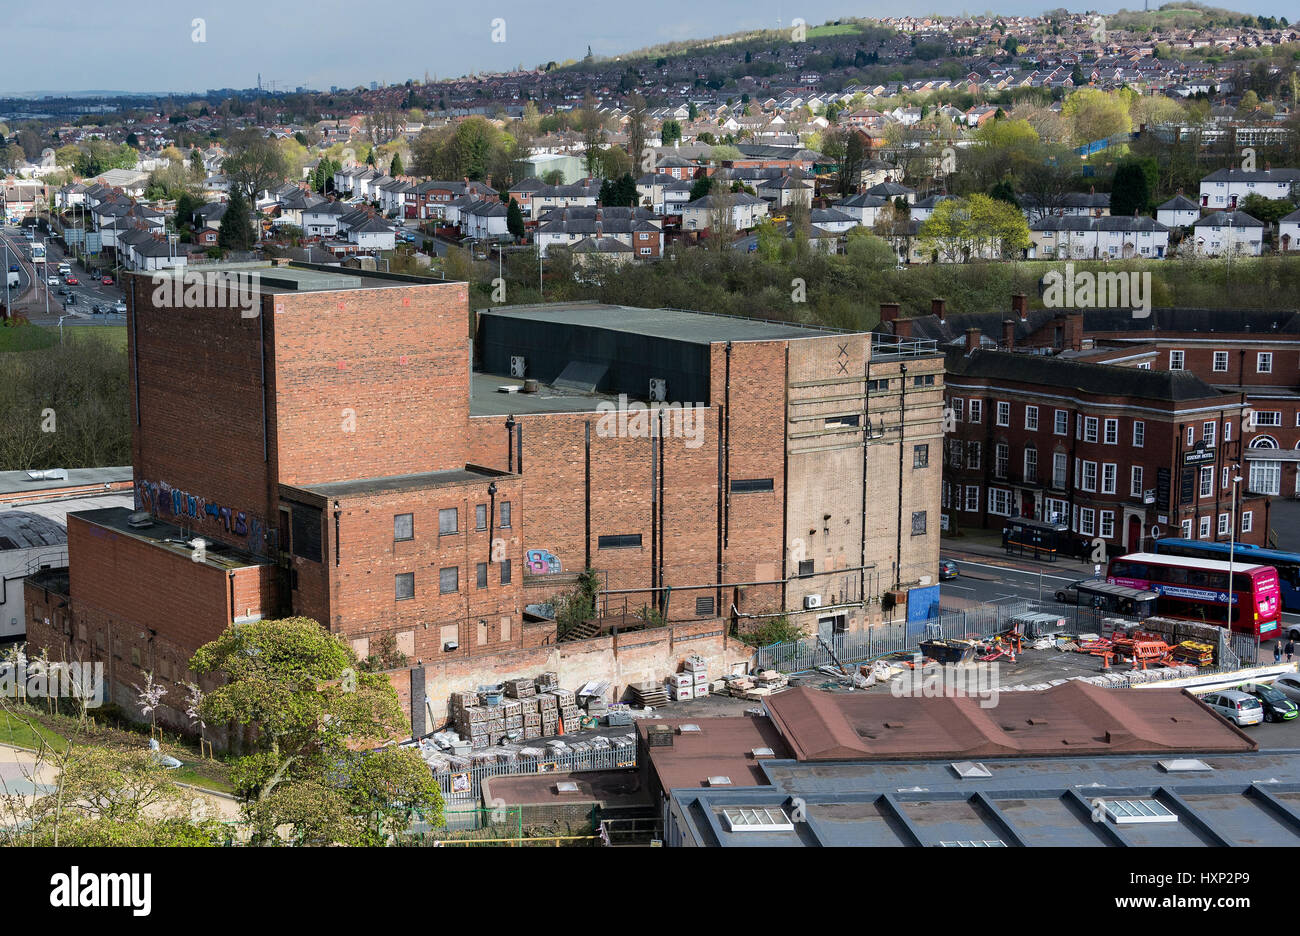 View of the old Plaza Cinema and the Station Hotel with Kate's Hill council estate in the distance. Dudley, - Stock Image